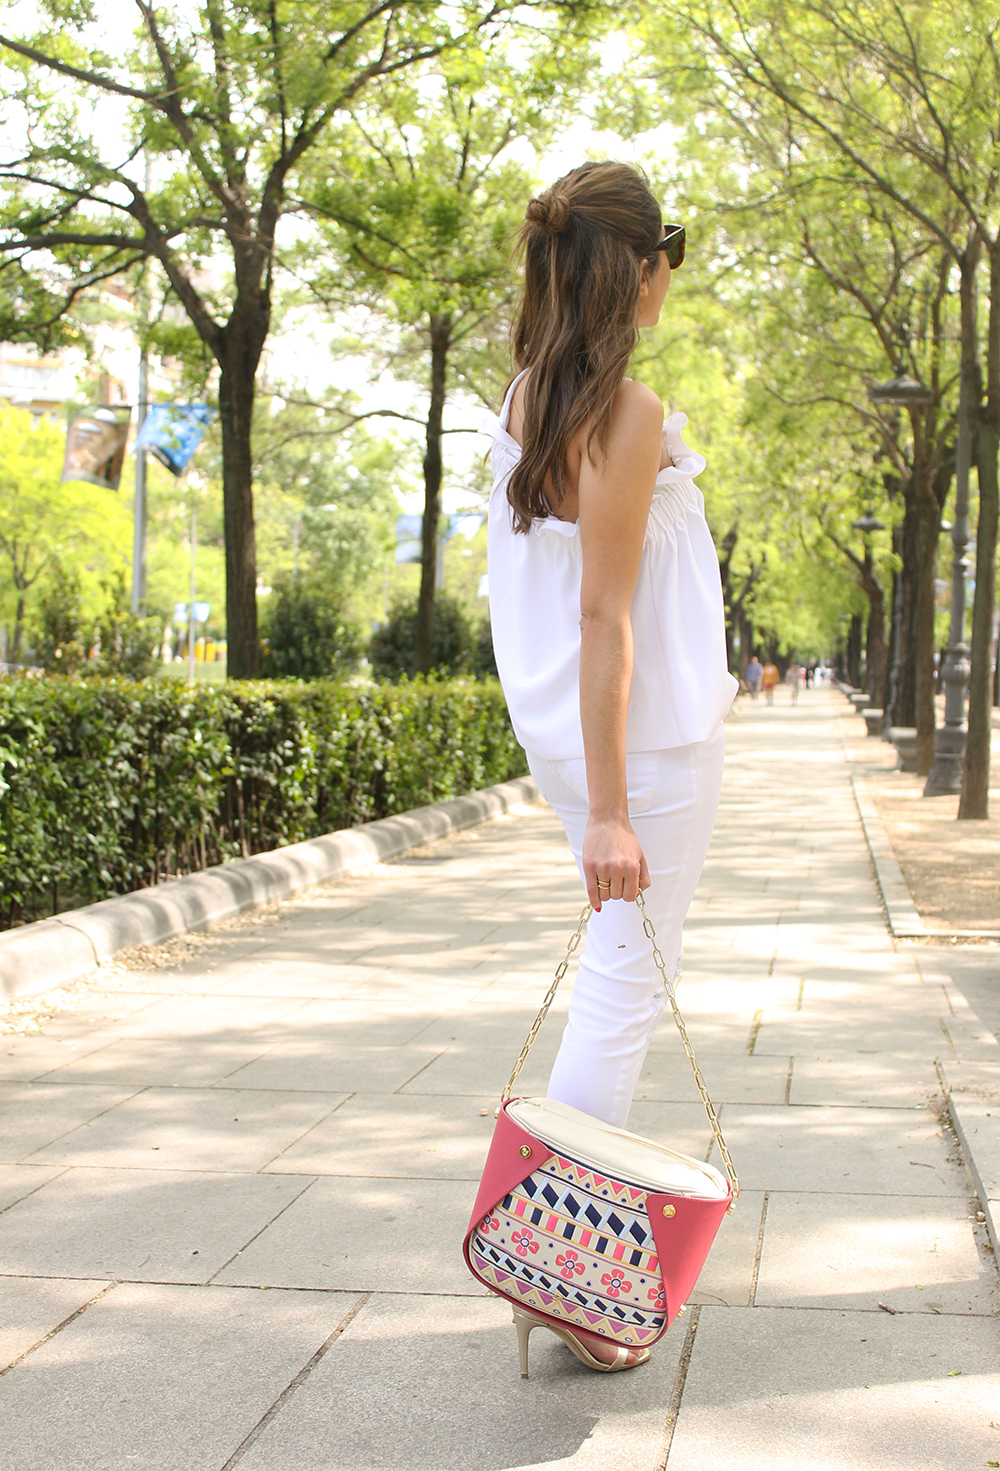 white outfit ripped jeans asymmetrical top pamapamar céline sunnies massimo dutti sandals fashion style07